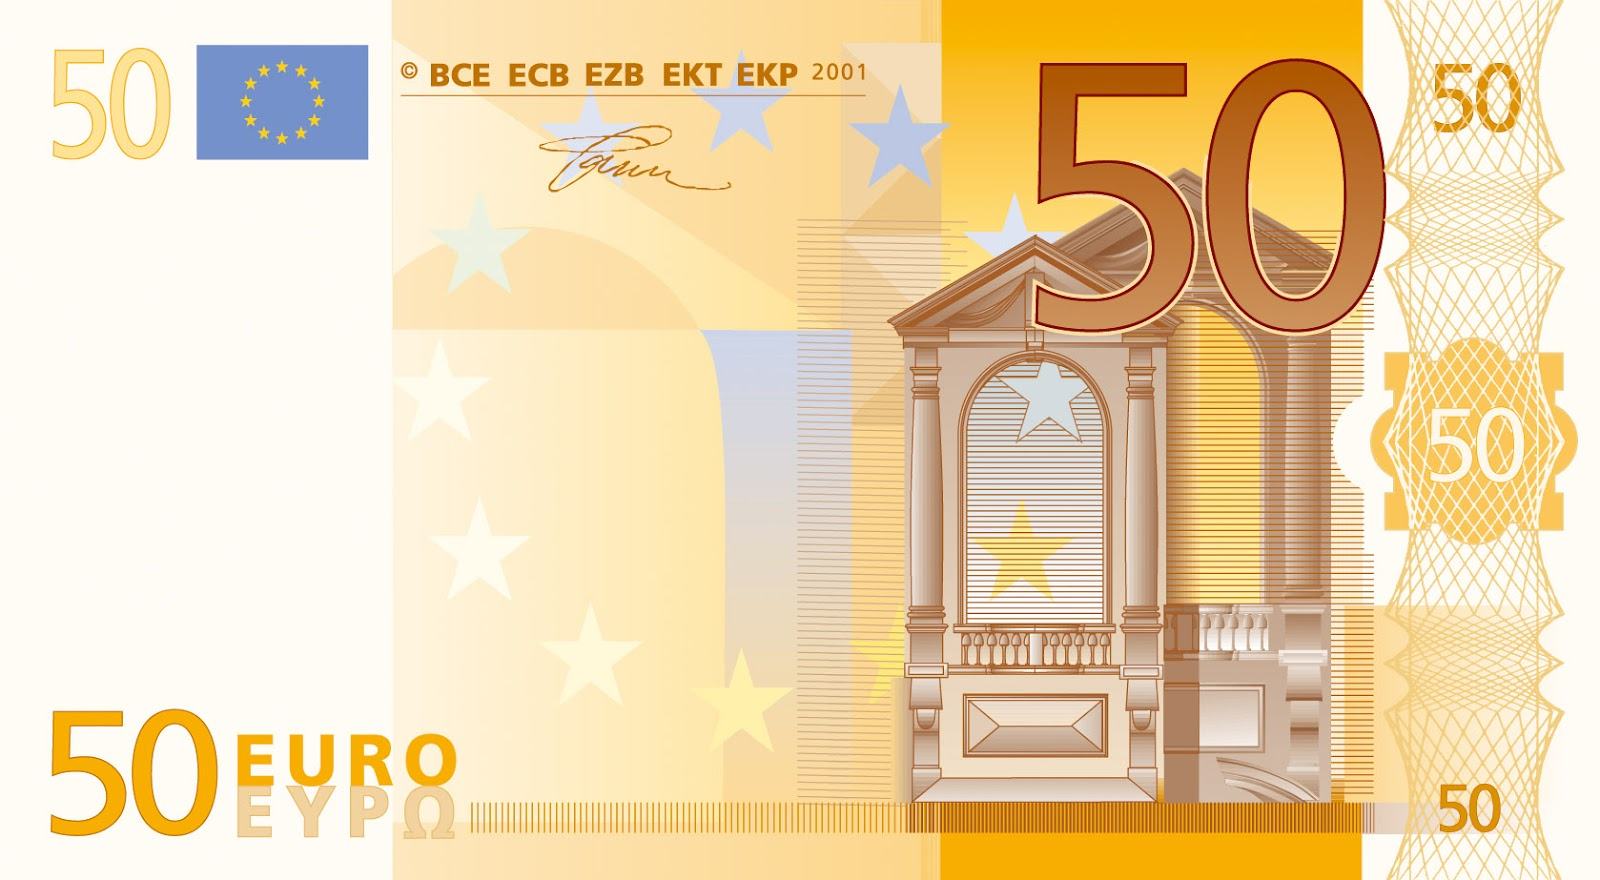 T geld t goed t goud for Wohnwand 50 euro